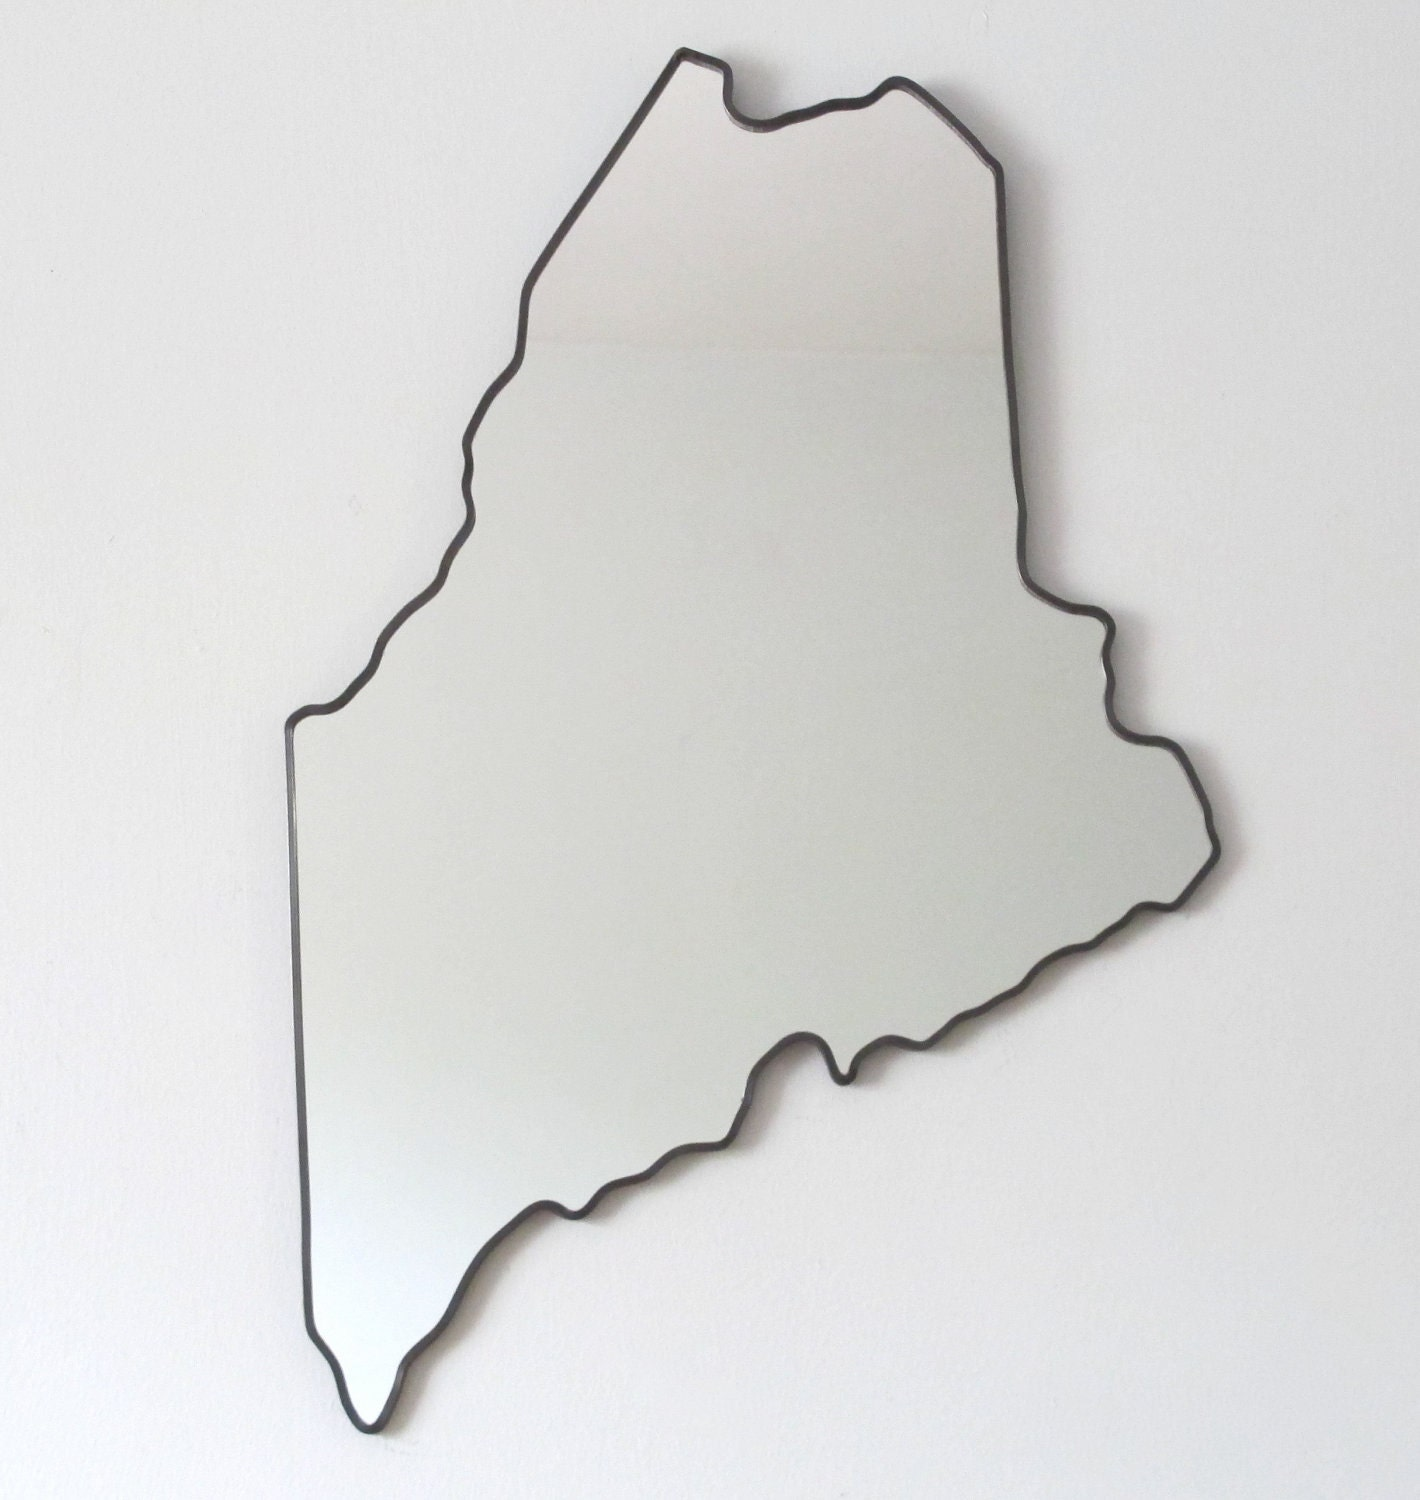 Maine Mirror Wall Mirror State Outline Silhouette By